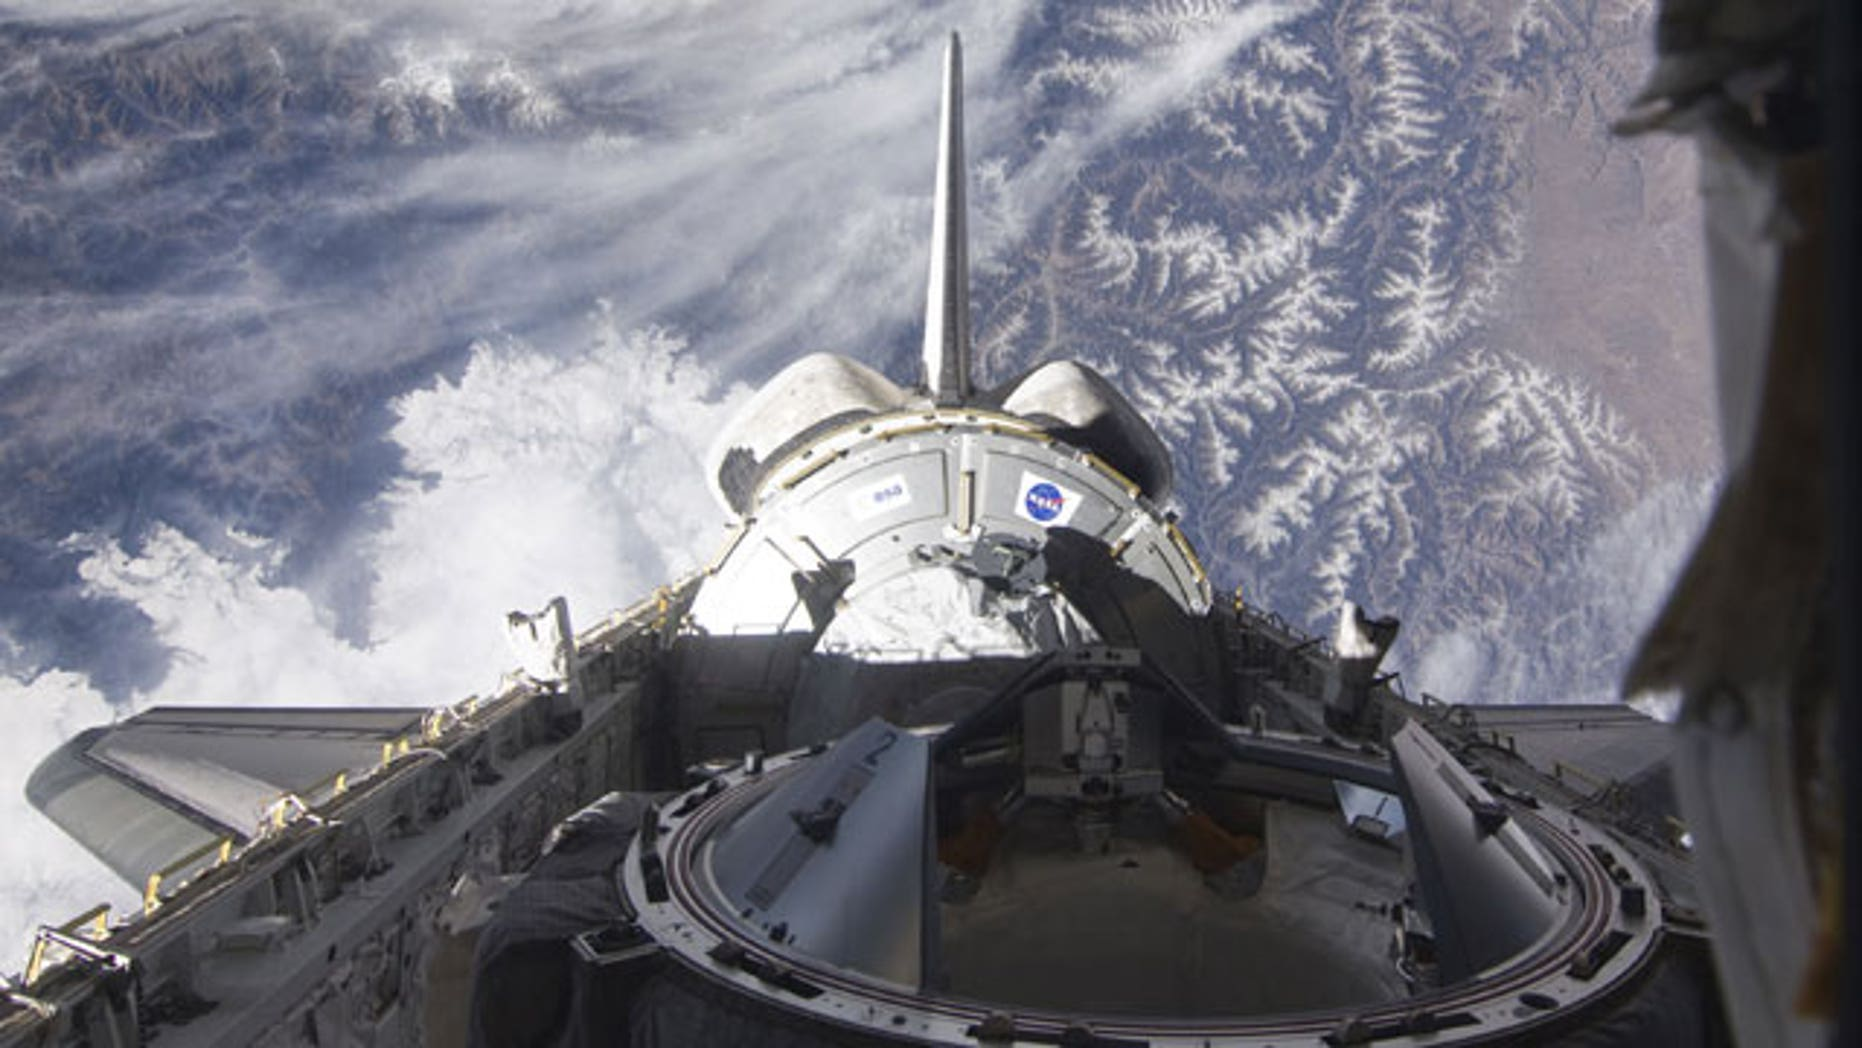 Feb. 9: Endeavour shown above Earth.